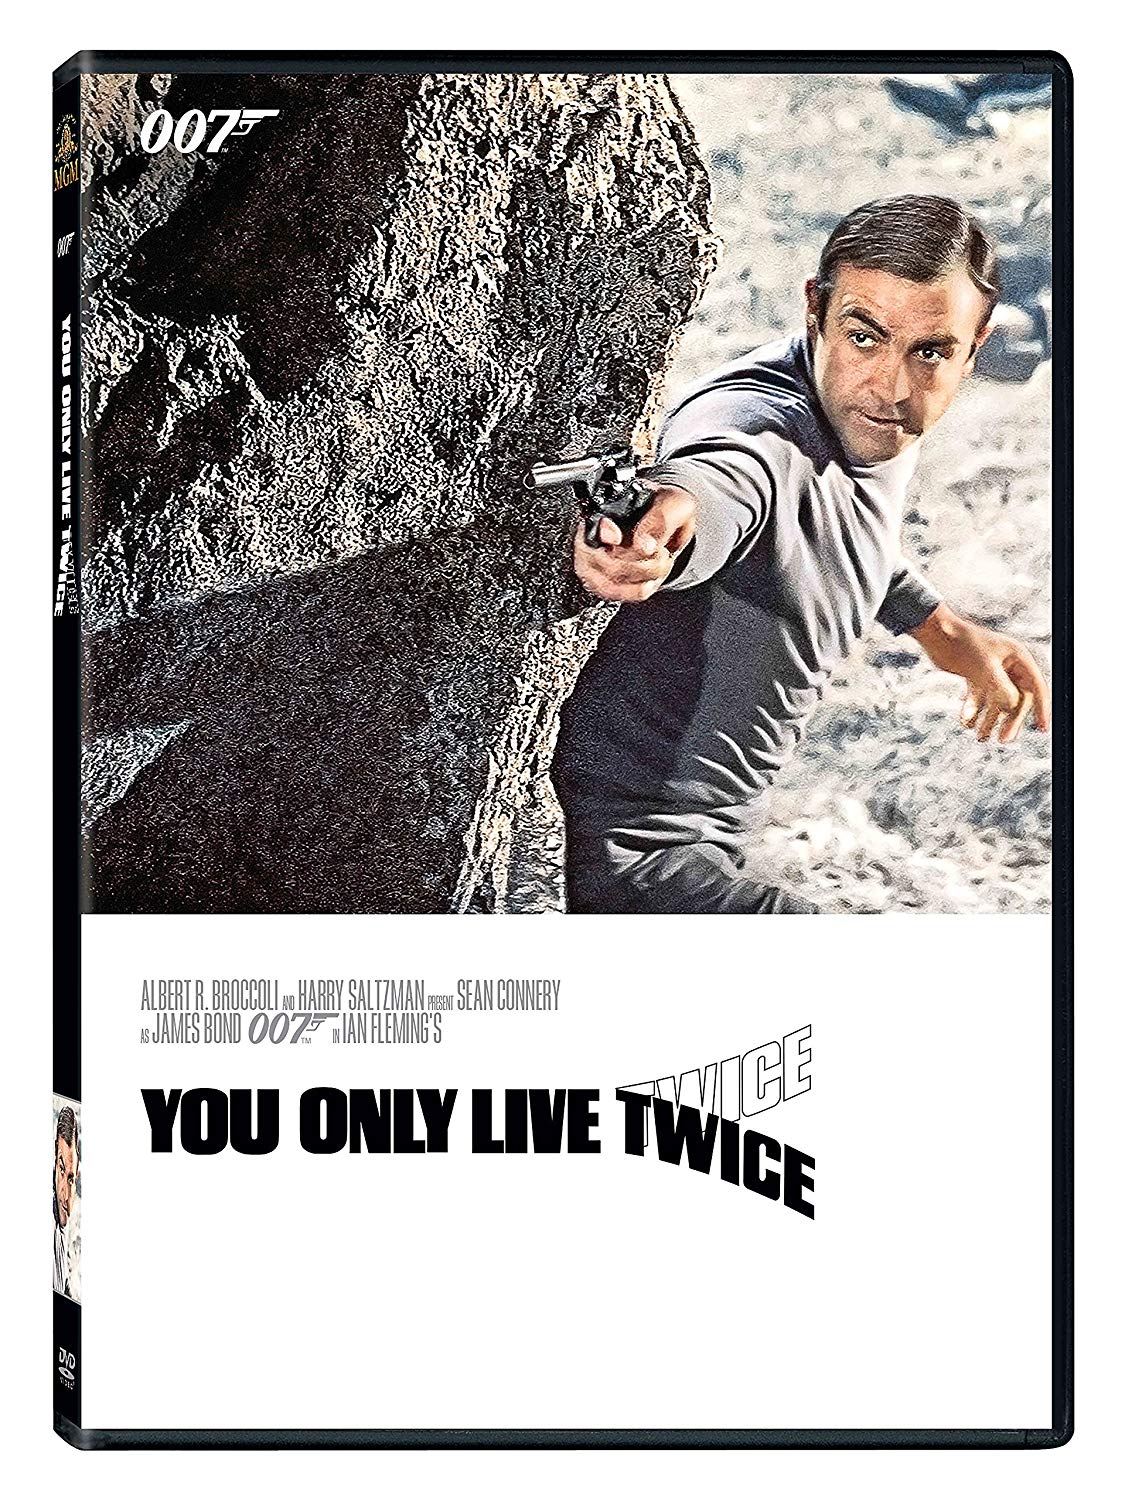 James Bond you only live twice